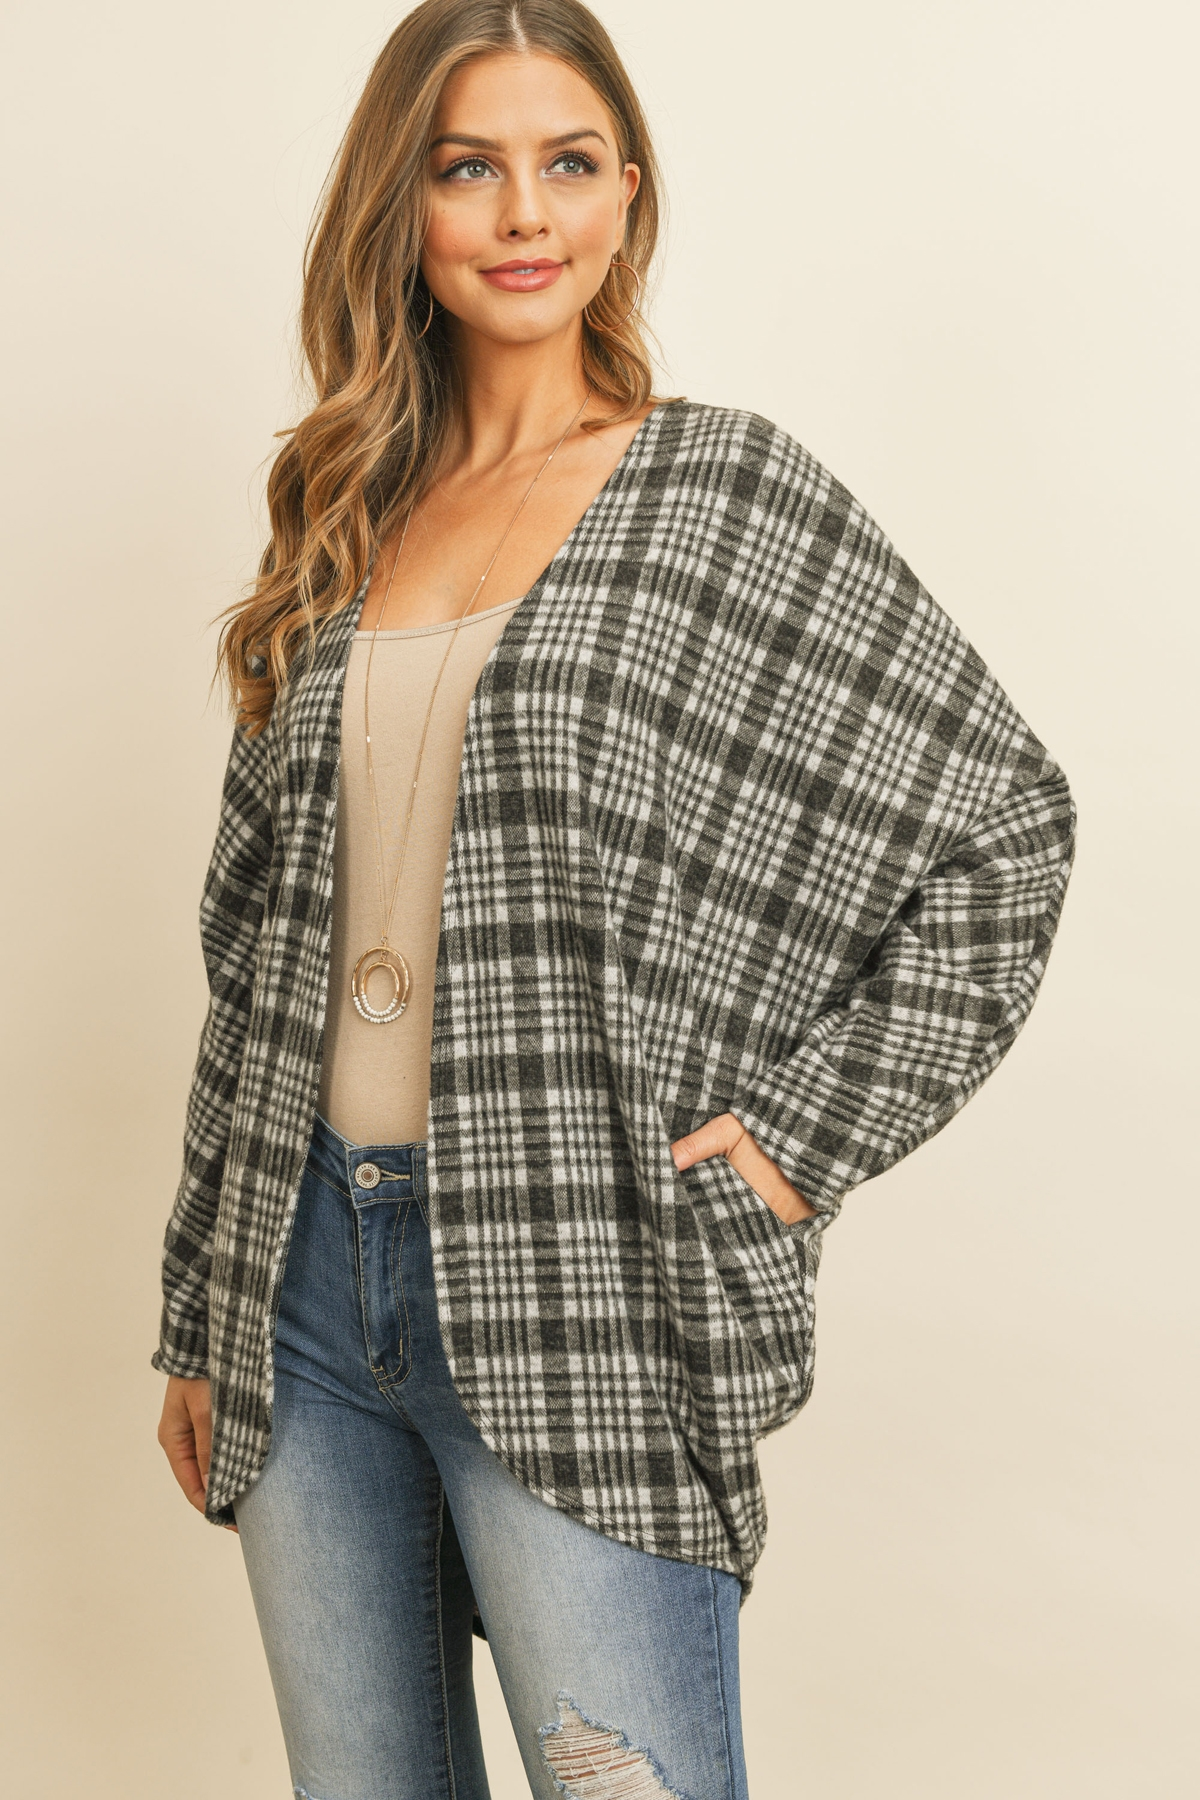 S13-5-4-PPC3004-BK - PLAID ROUND HEM POCKET OPEN CARDIGAN- BLACK 1-2-2-2